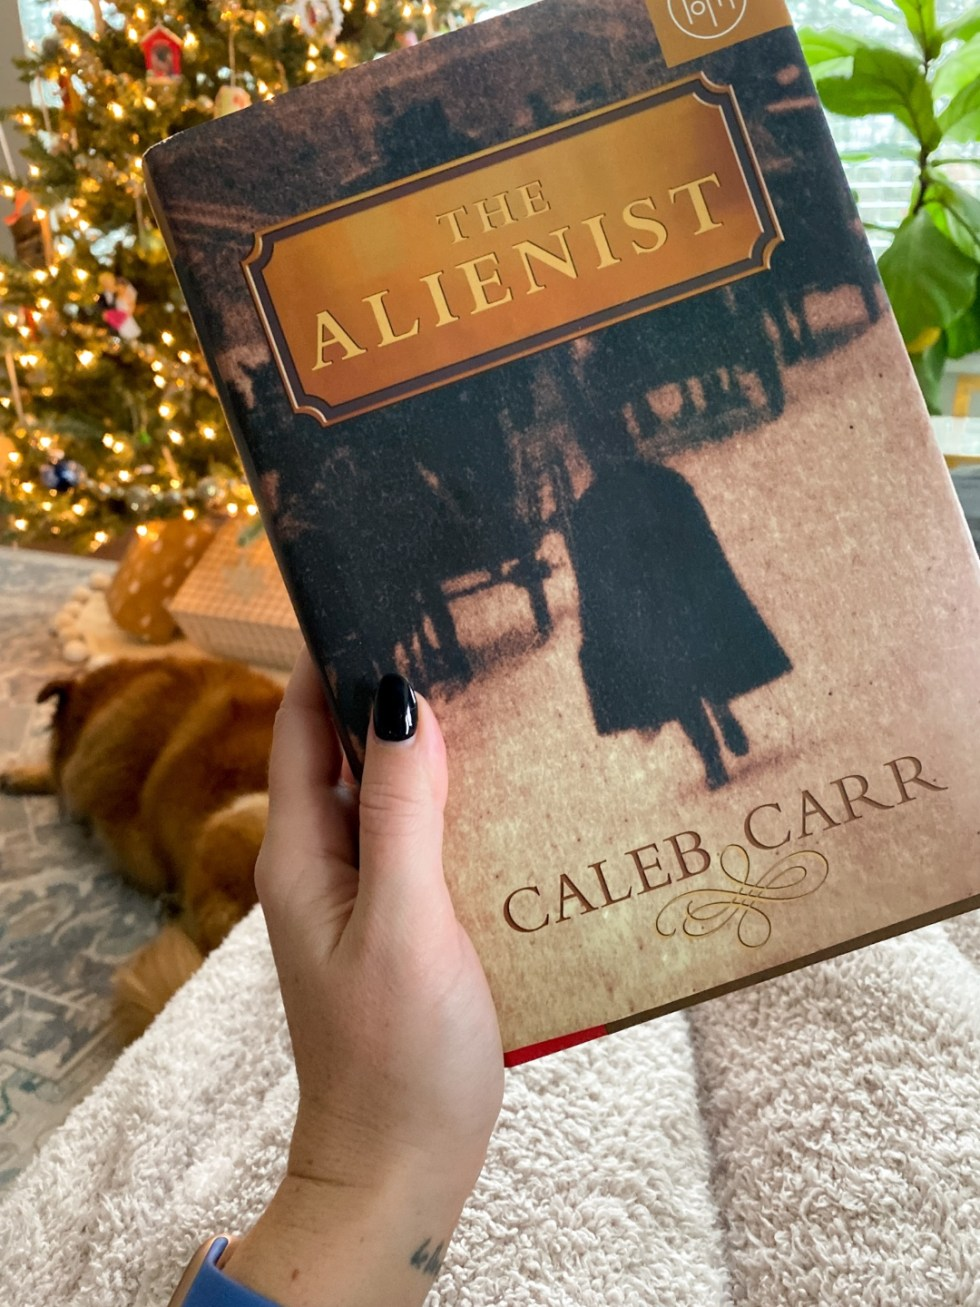 2021 Reading List: What I've Read So Far - I'm Fixin' To - @imfixintoblog | 2021 Reading List by popular NC lifestyle blog, I'm Fixin' To: image of the book The Alienist.